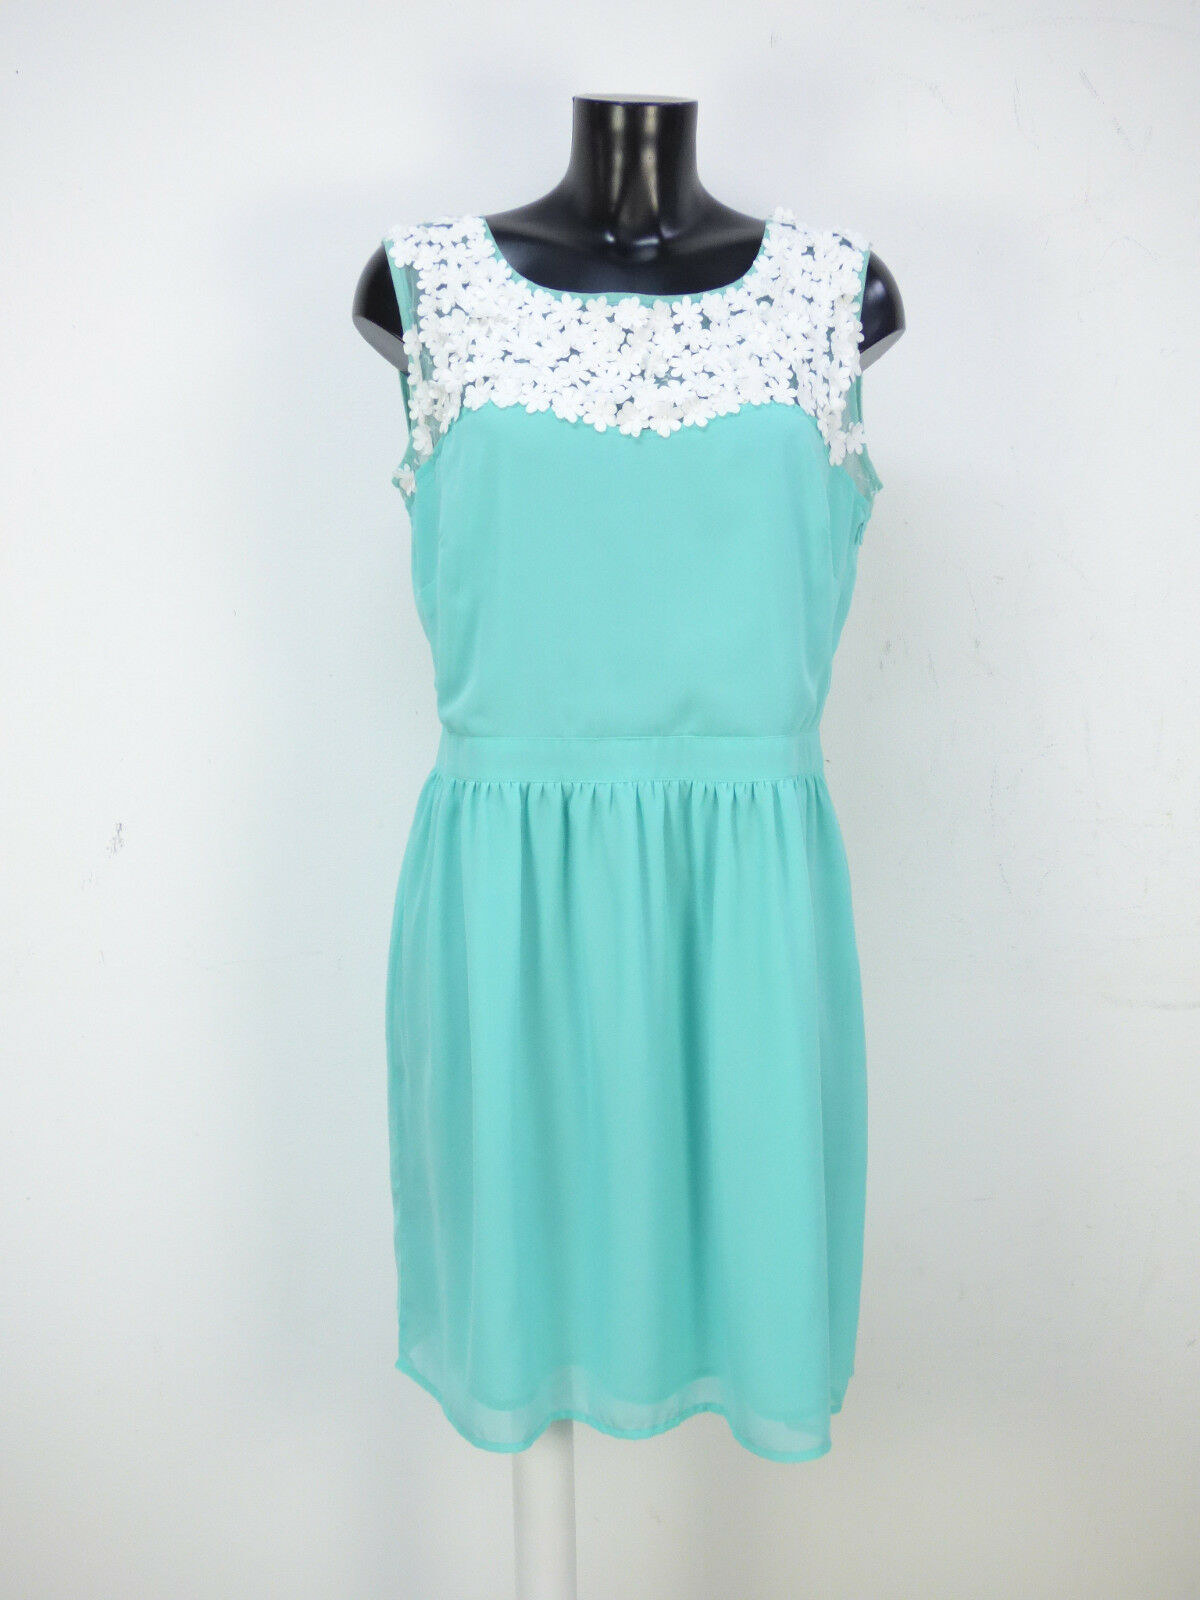 FRENCH COLLECTION KLEID GR 42   green & WIE N( O 6016 )